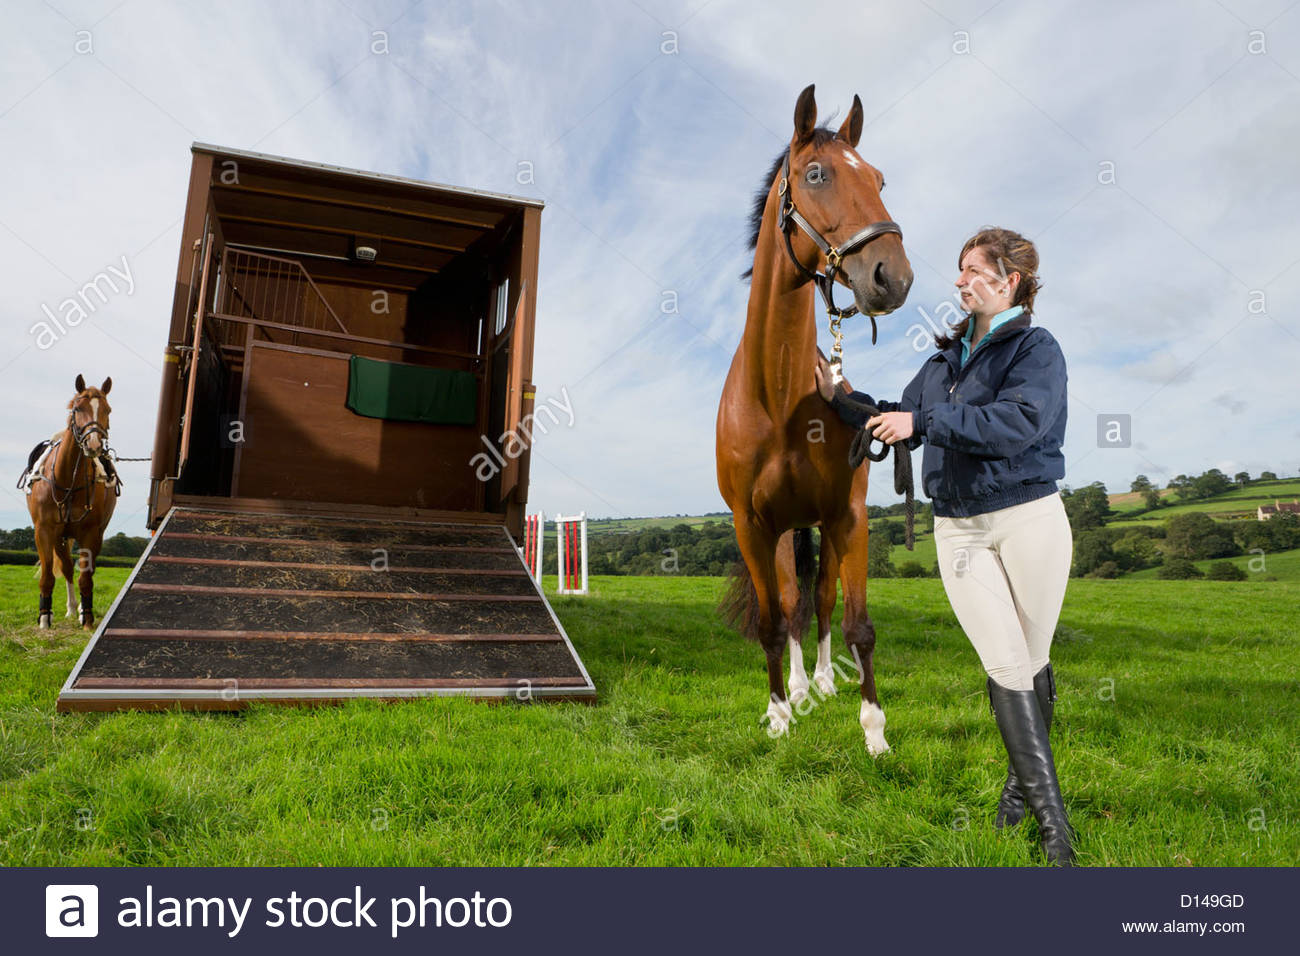 Girl with horse next to ramp of horse trailer - Stock Image